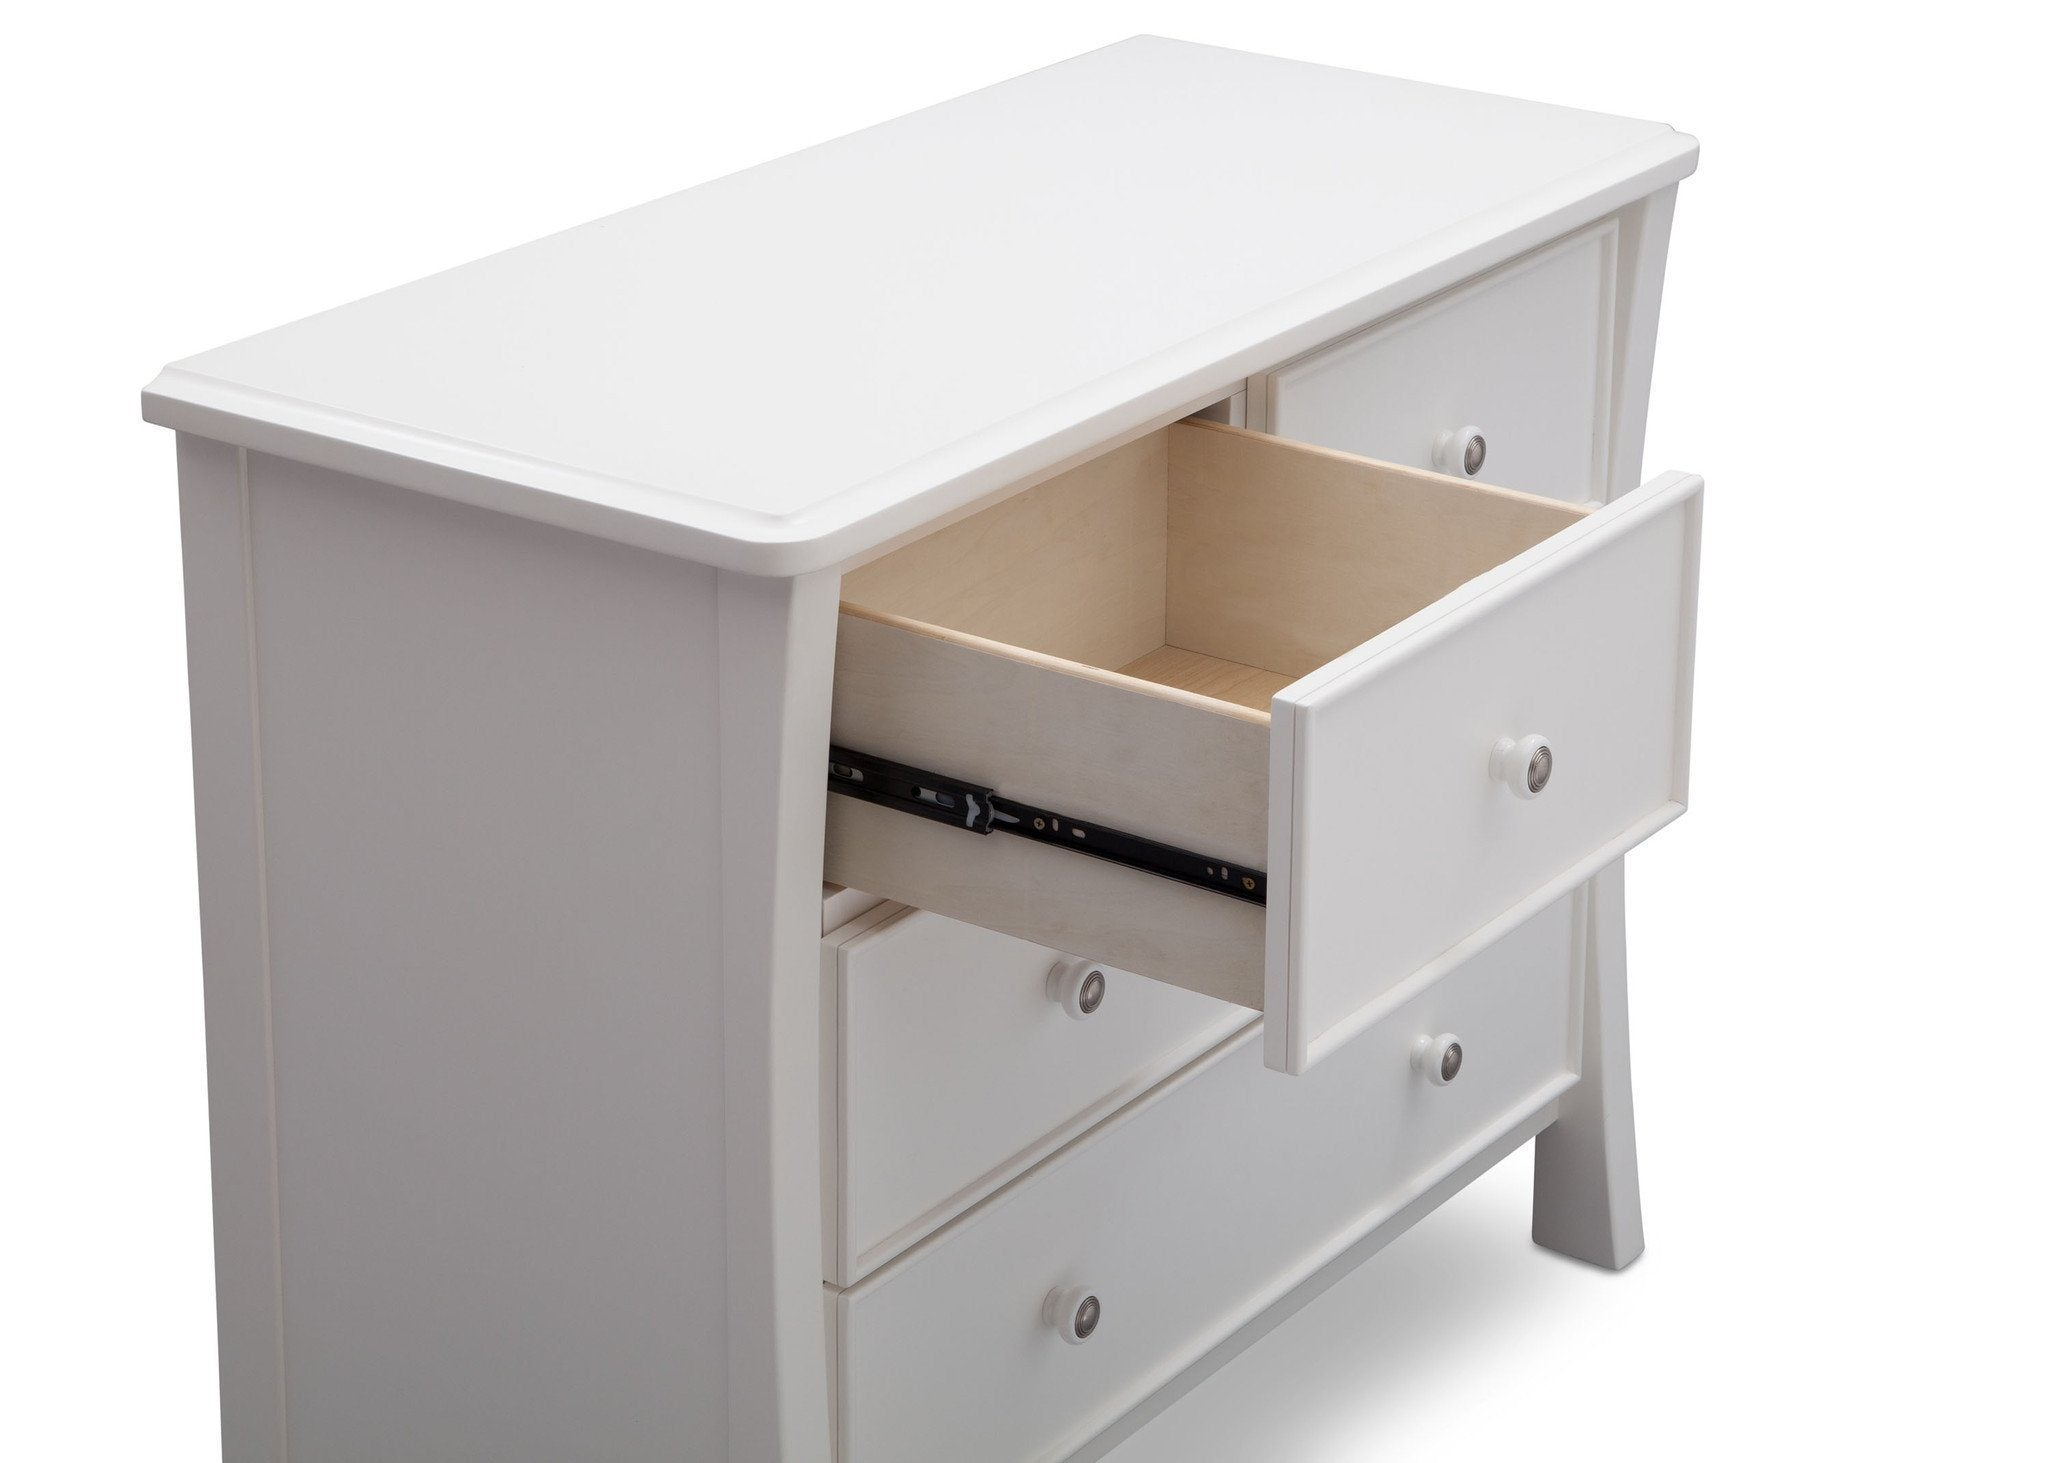 Simmons Kids White Ambiance (108) Madisson 4 Drawer Dresser with Changing Top, Detail View, a4a